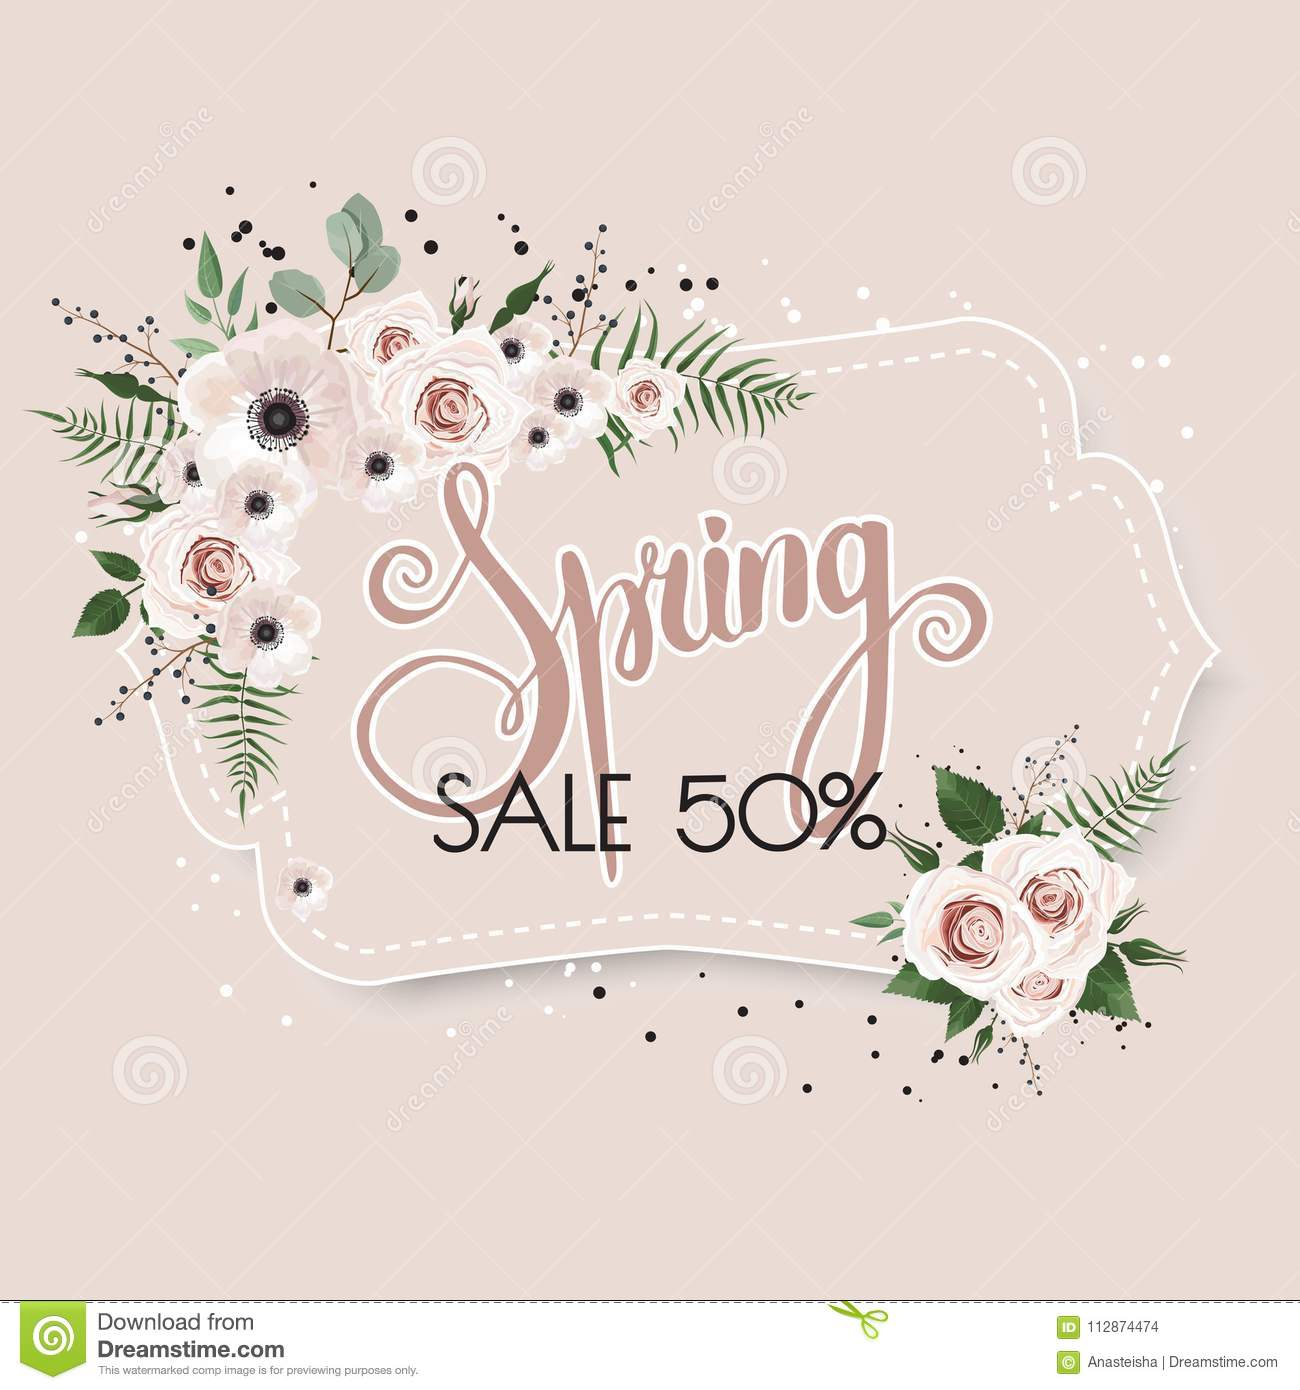 Spring sale background with beautiful flowers stock vector spring sale background with beautiful flowers izmirmasajfo